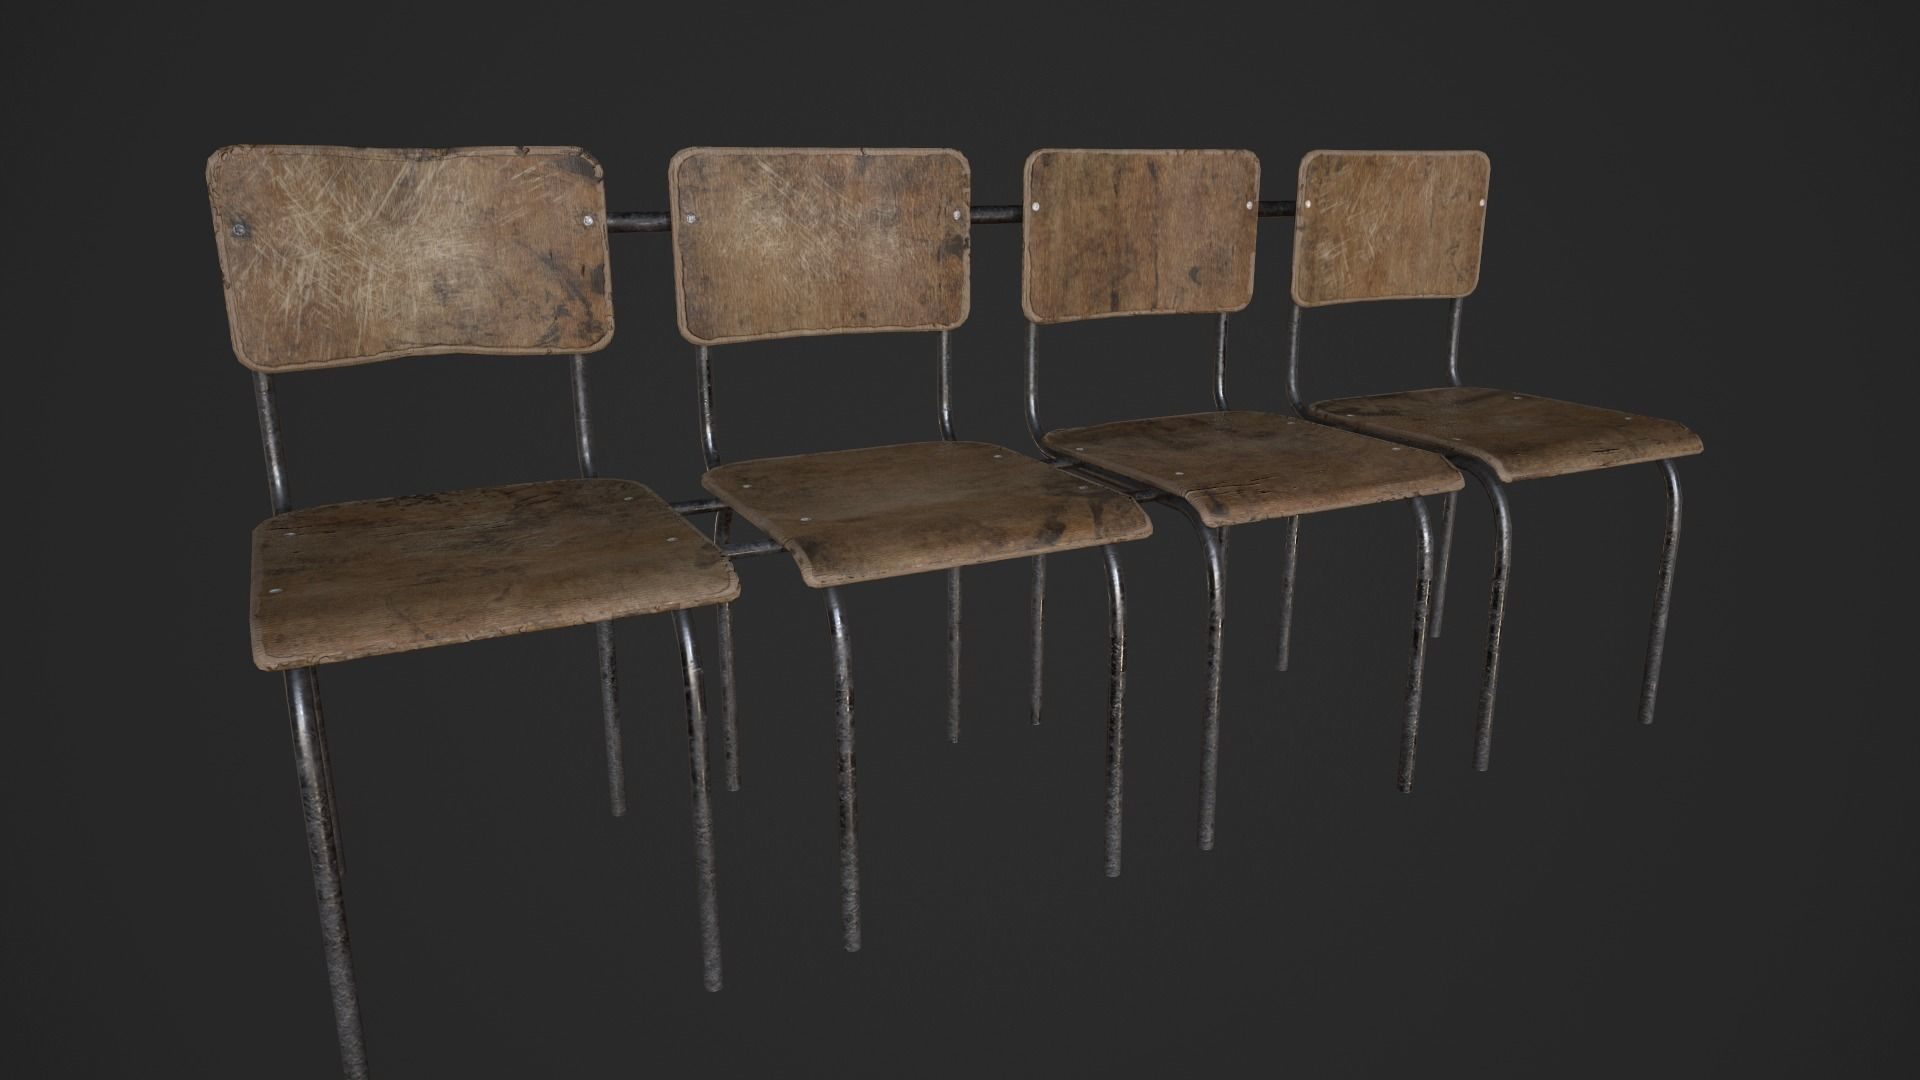 Chair Bench - Multichair - Low Poly